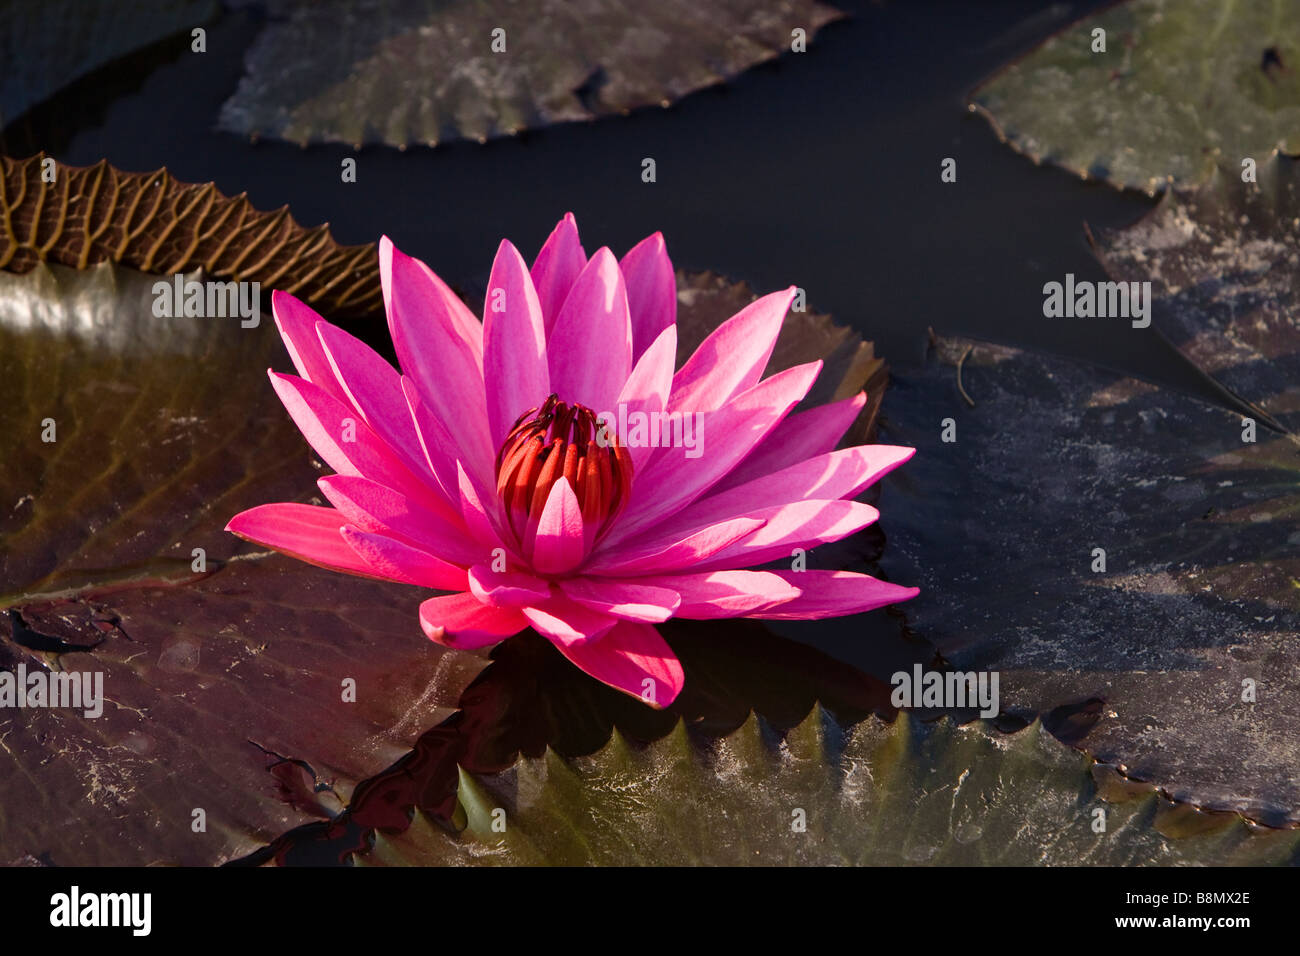 Indian Lilly Stock Photos Indian Lilly Stock Images Alamy